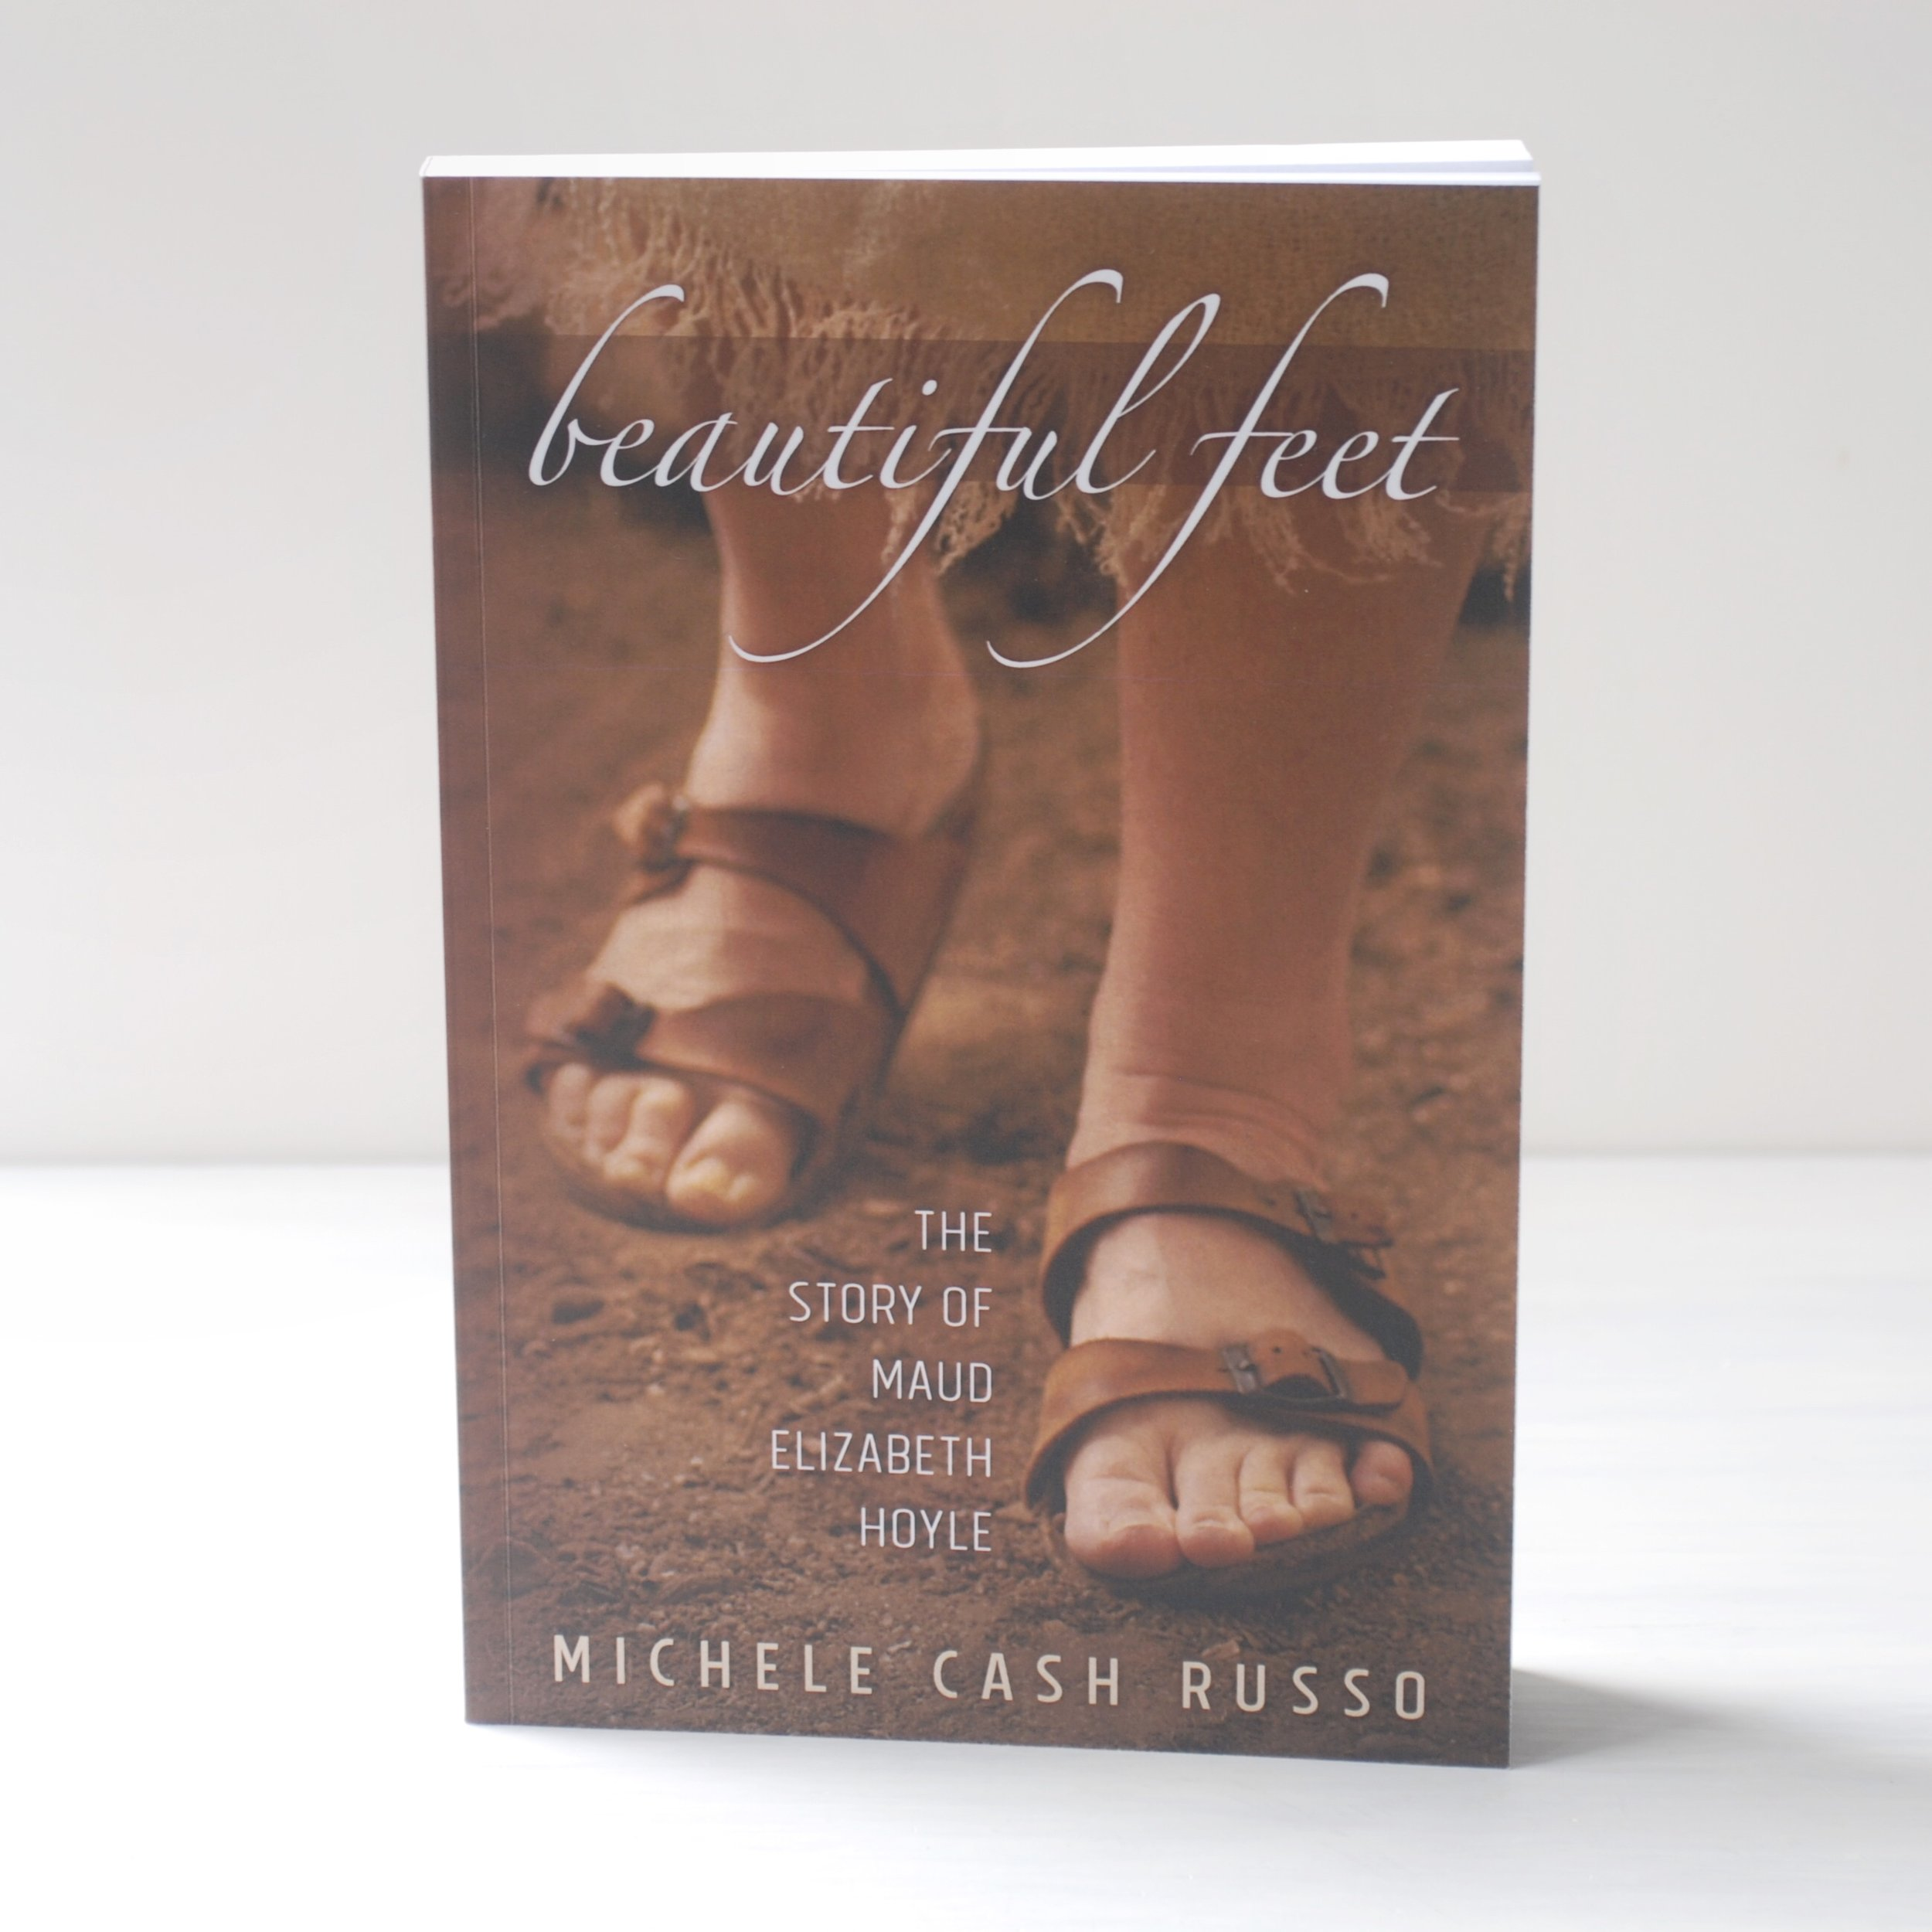 The author was thrilled with this book cover photo and design. She wanted an image of feet on a dirt path but it was the dead of winter, so I arranged for the local conservatory to let us use their desert room for a photo shoot.